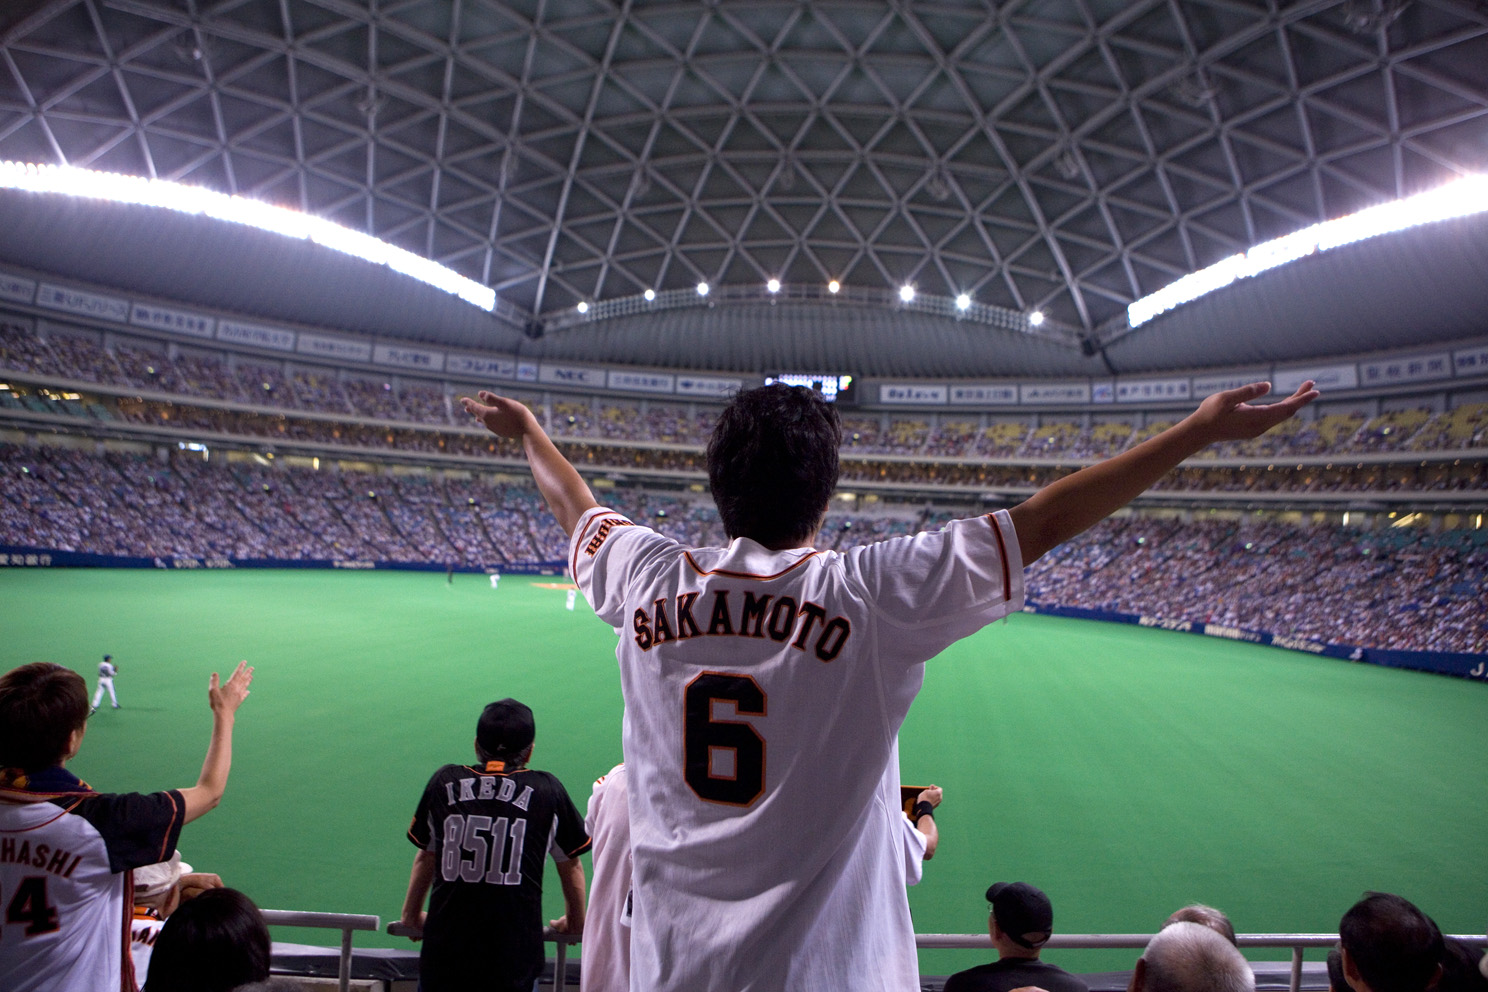 Yomiuri Giants fans in the Tokyo Dome